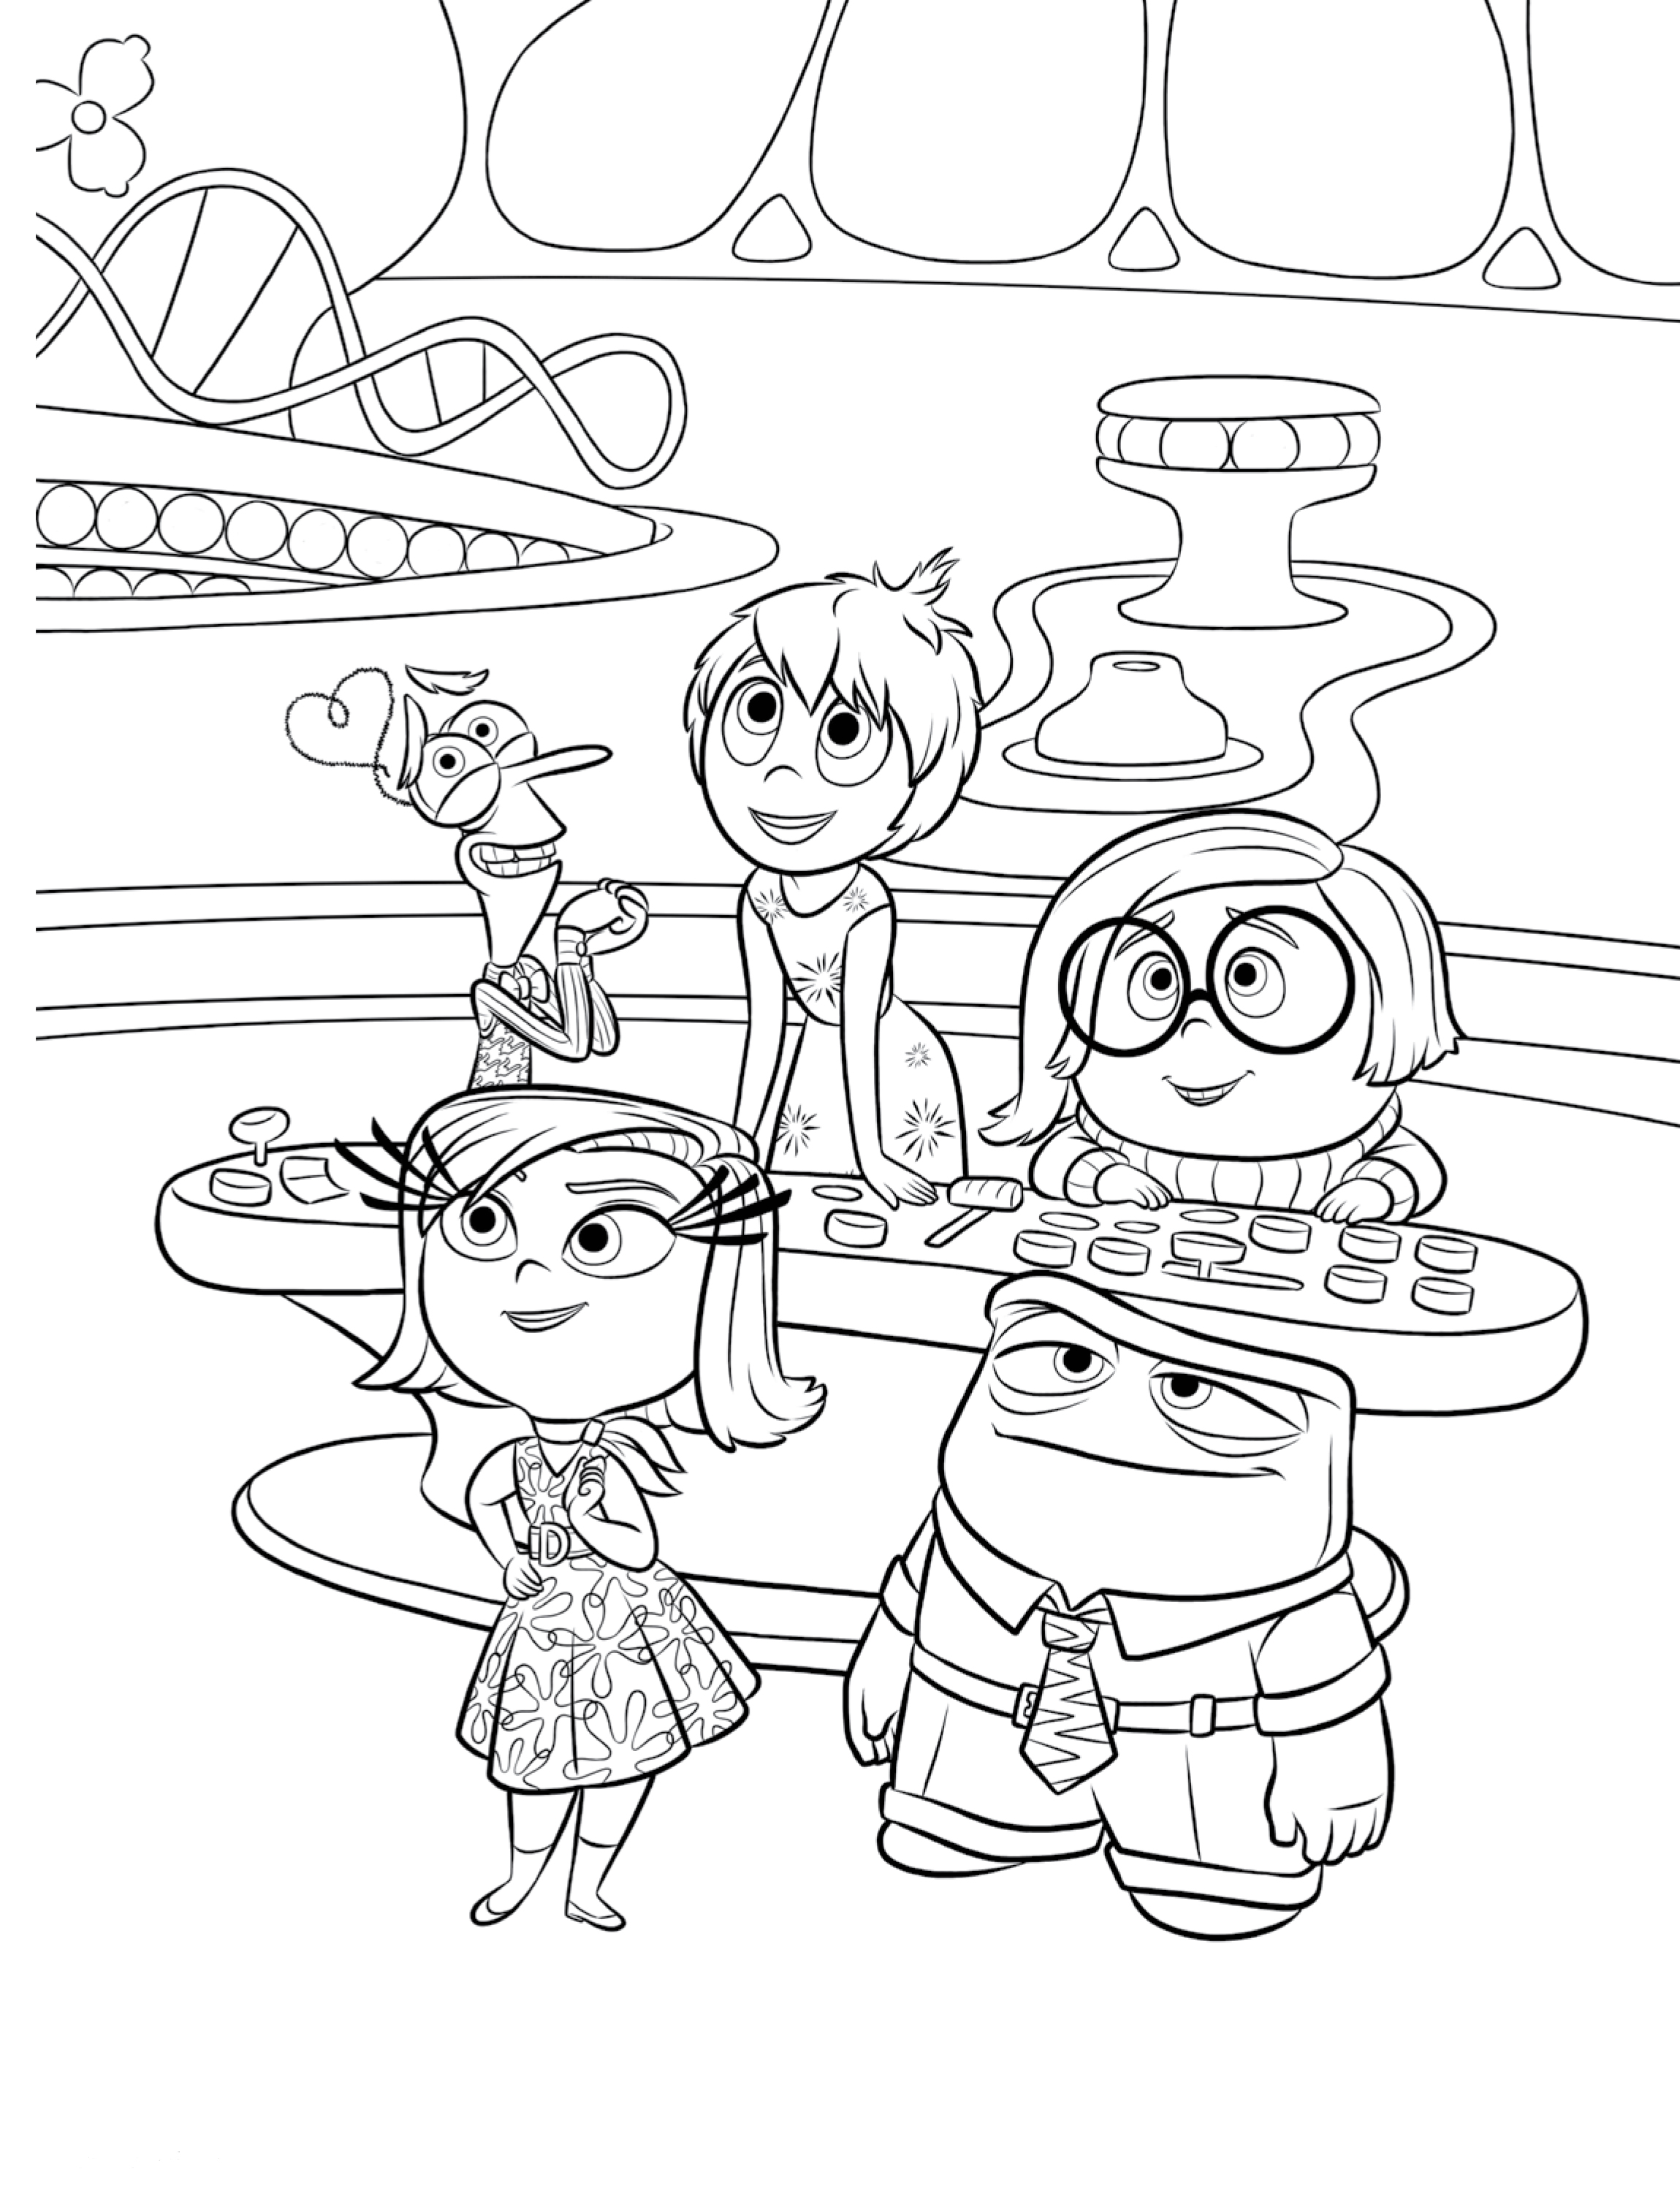 a coloring pages - photo#5